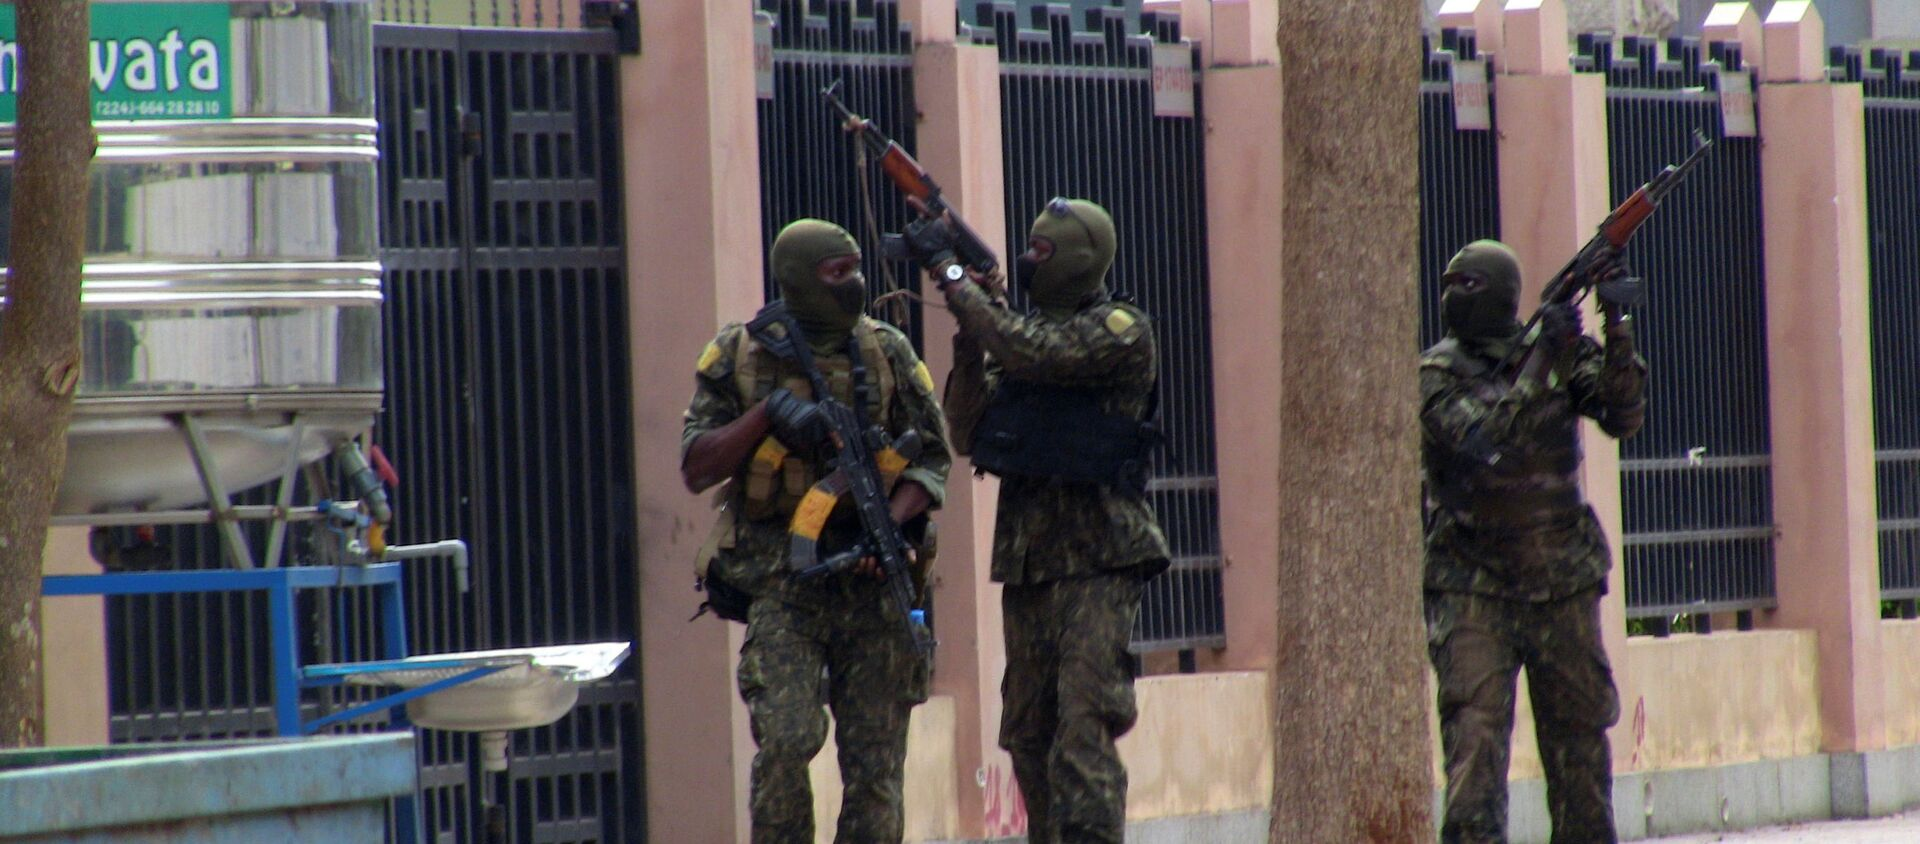 Special forces members are seen during an uprising that led to the toppling of president Alpha Conde in Kaloum neighbourhood of Conakry, Guinea September 5, 2021 - Sputnik International, 1920, 06.09.2021